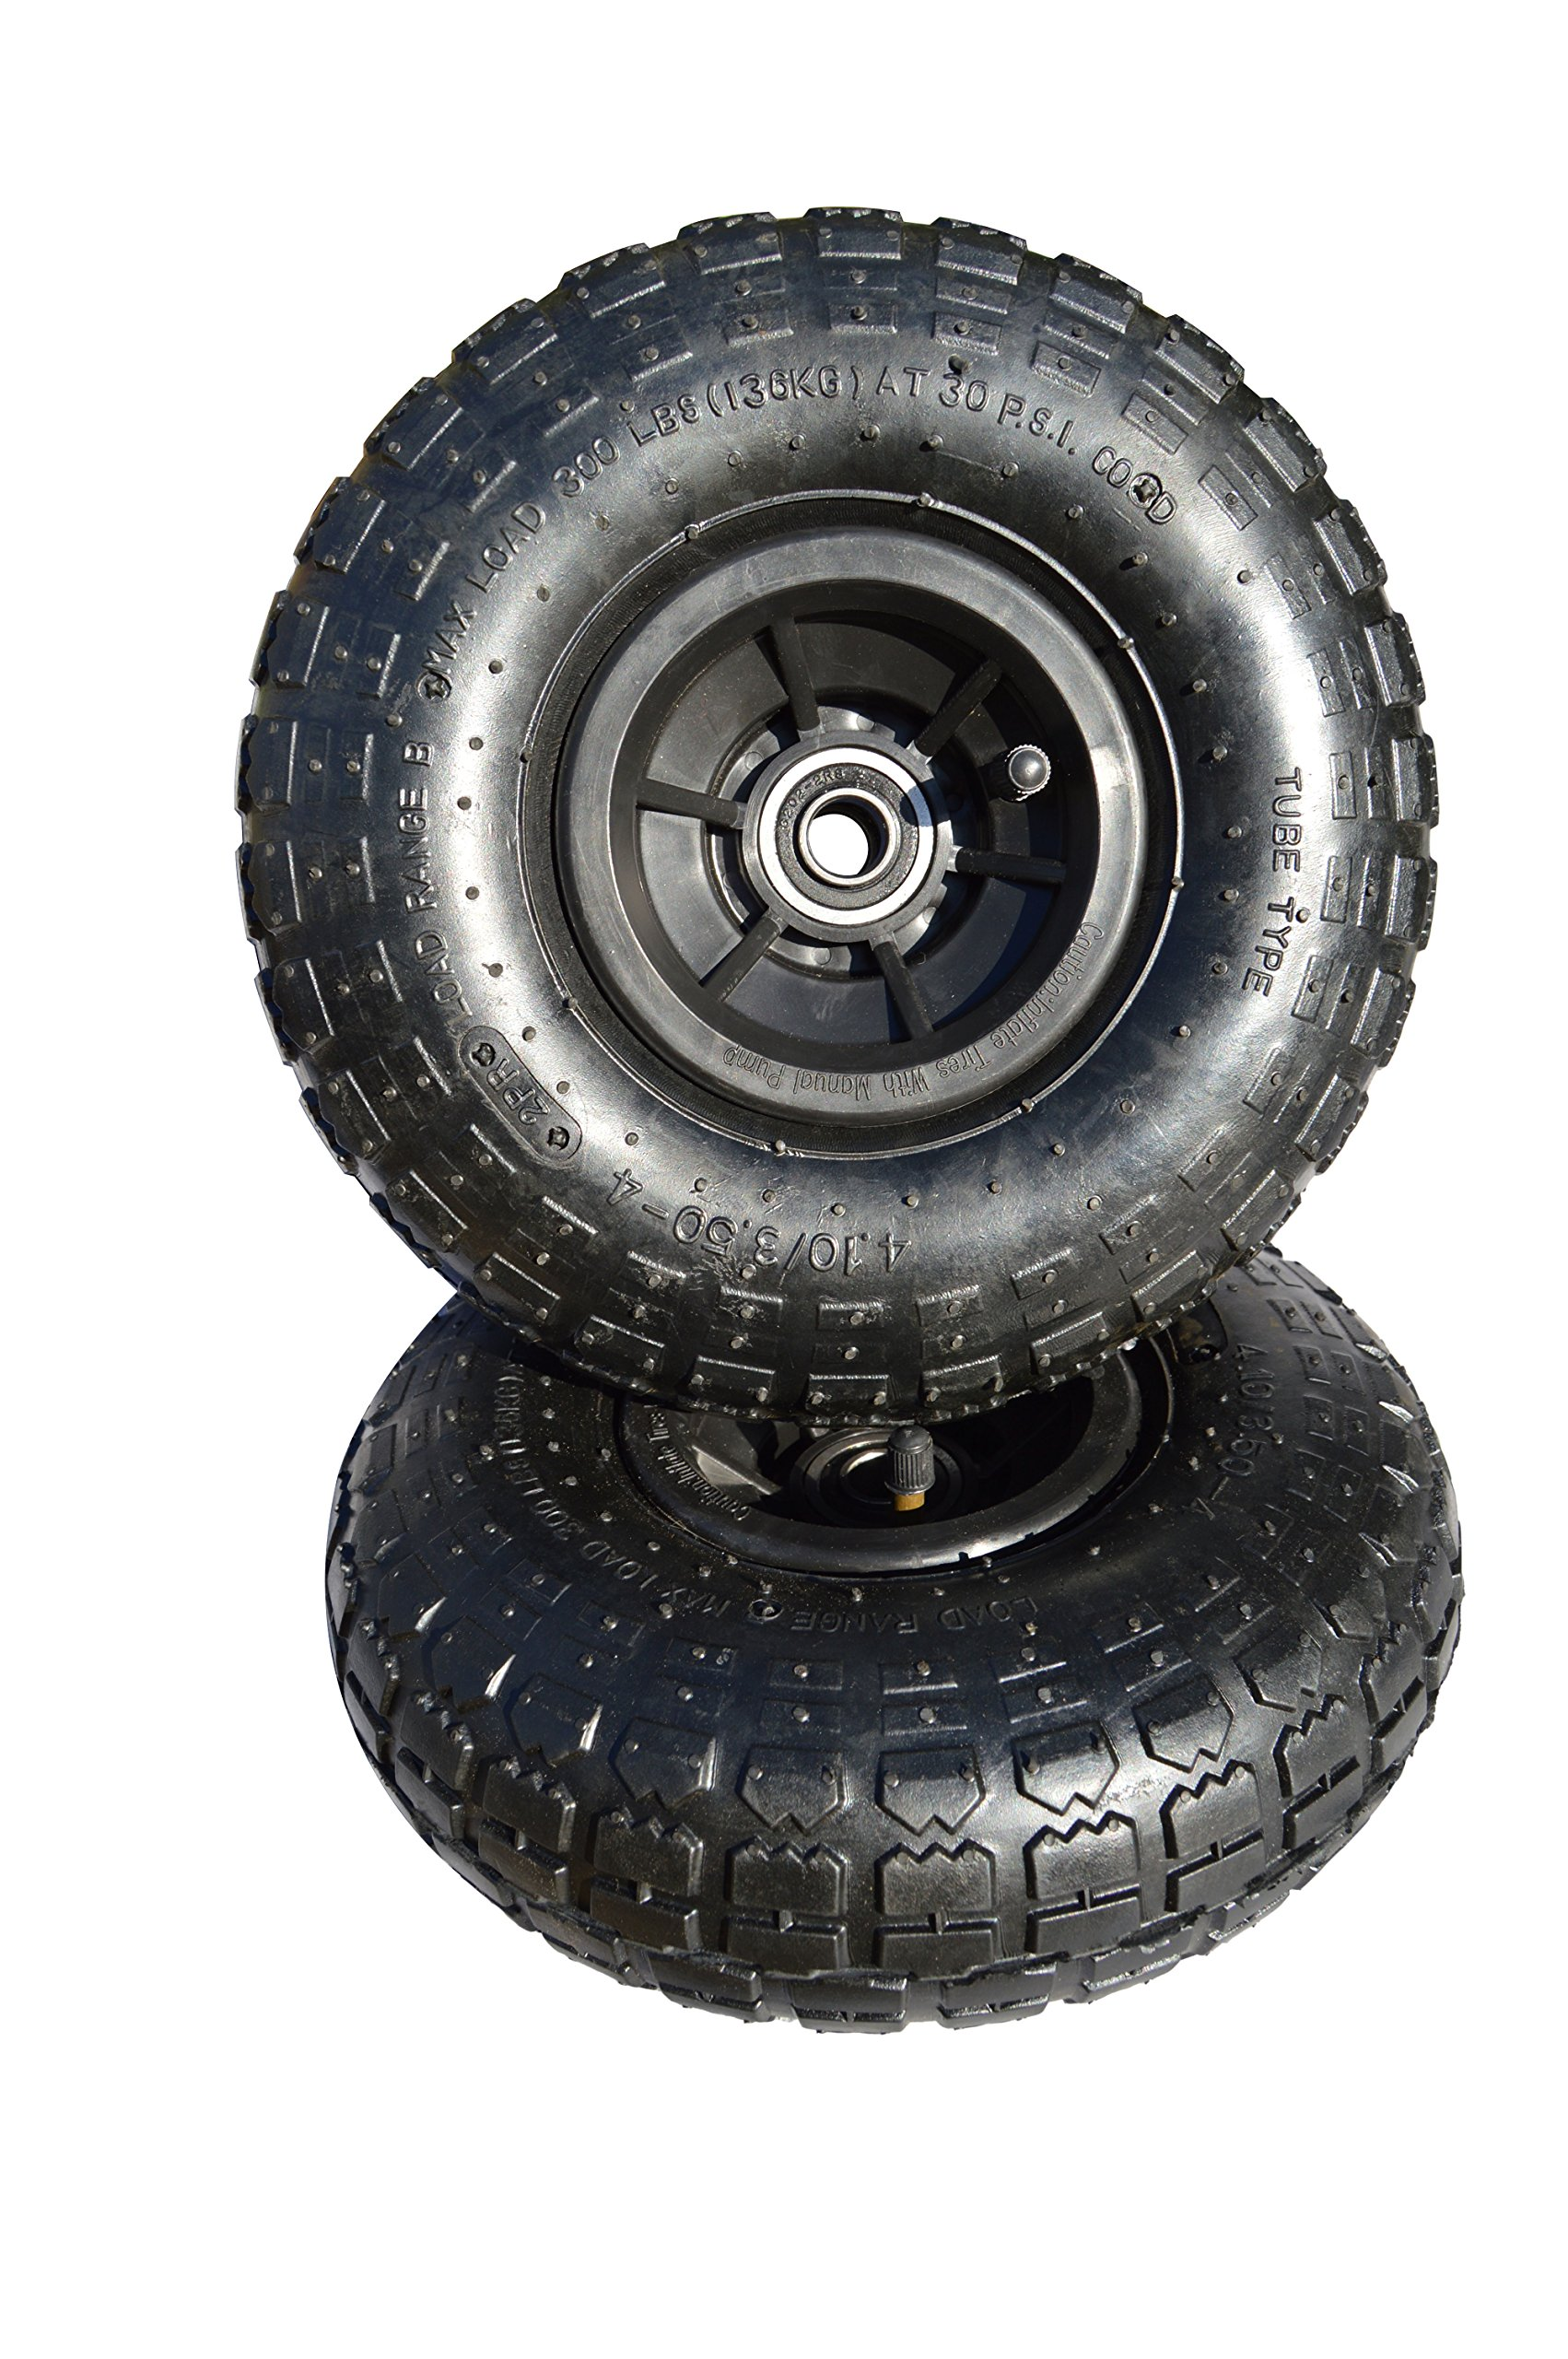 2-Pack, 10-inch Diameter, Pneumatic Tires With Sealed Wheel Bearings for Hand Truck or All Purpose Utility Tires